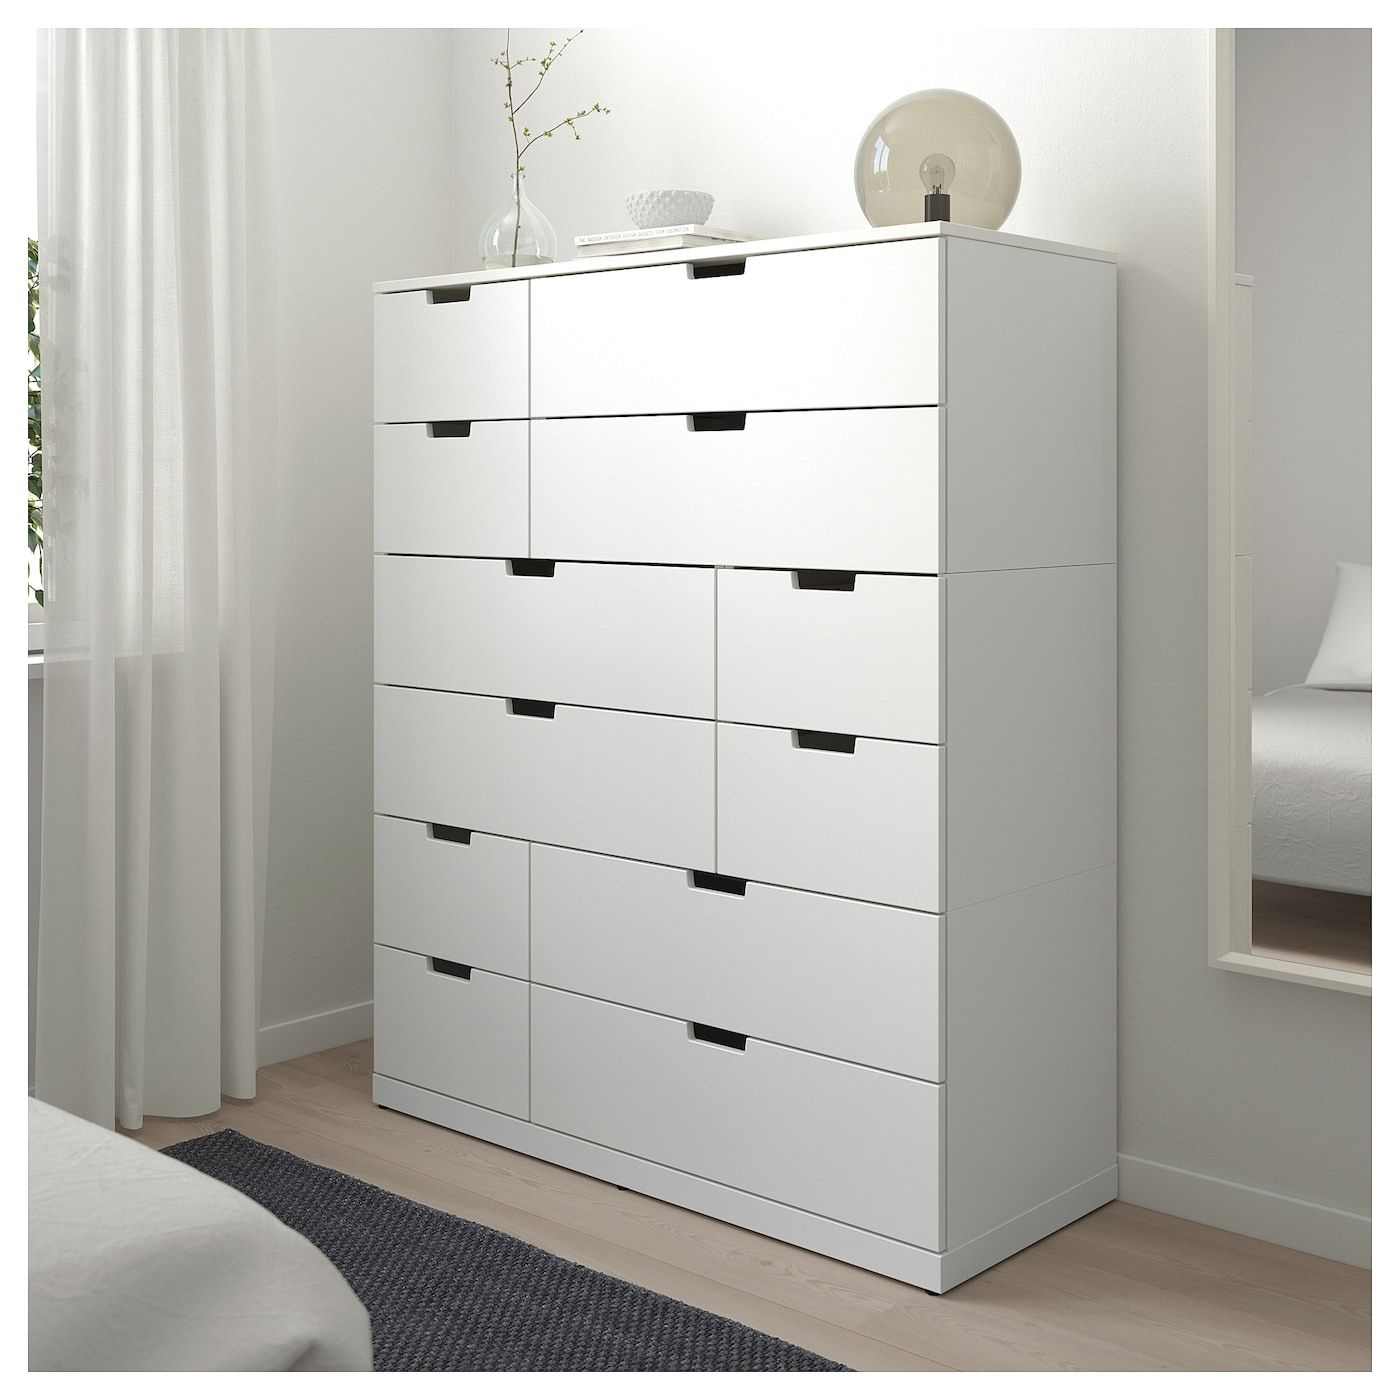 Home Furniture Store Modern Furnishings Decor At Home Furniture Store Ikea Nordli Chest Of Drawers [ 1400 x 1400 Pixel ]